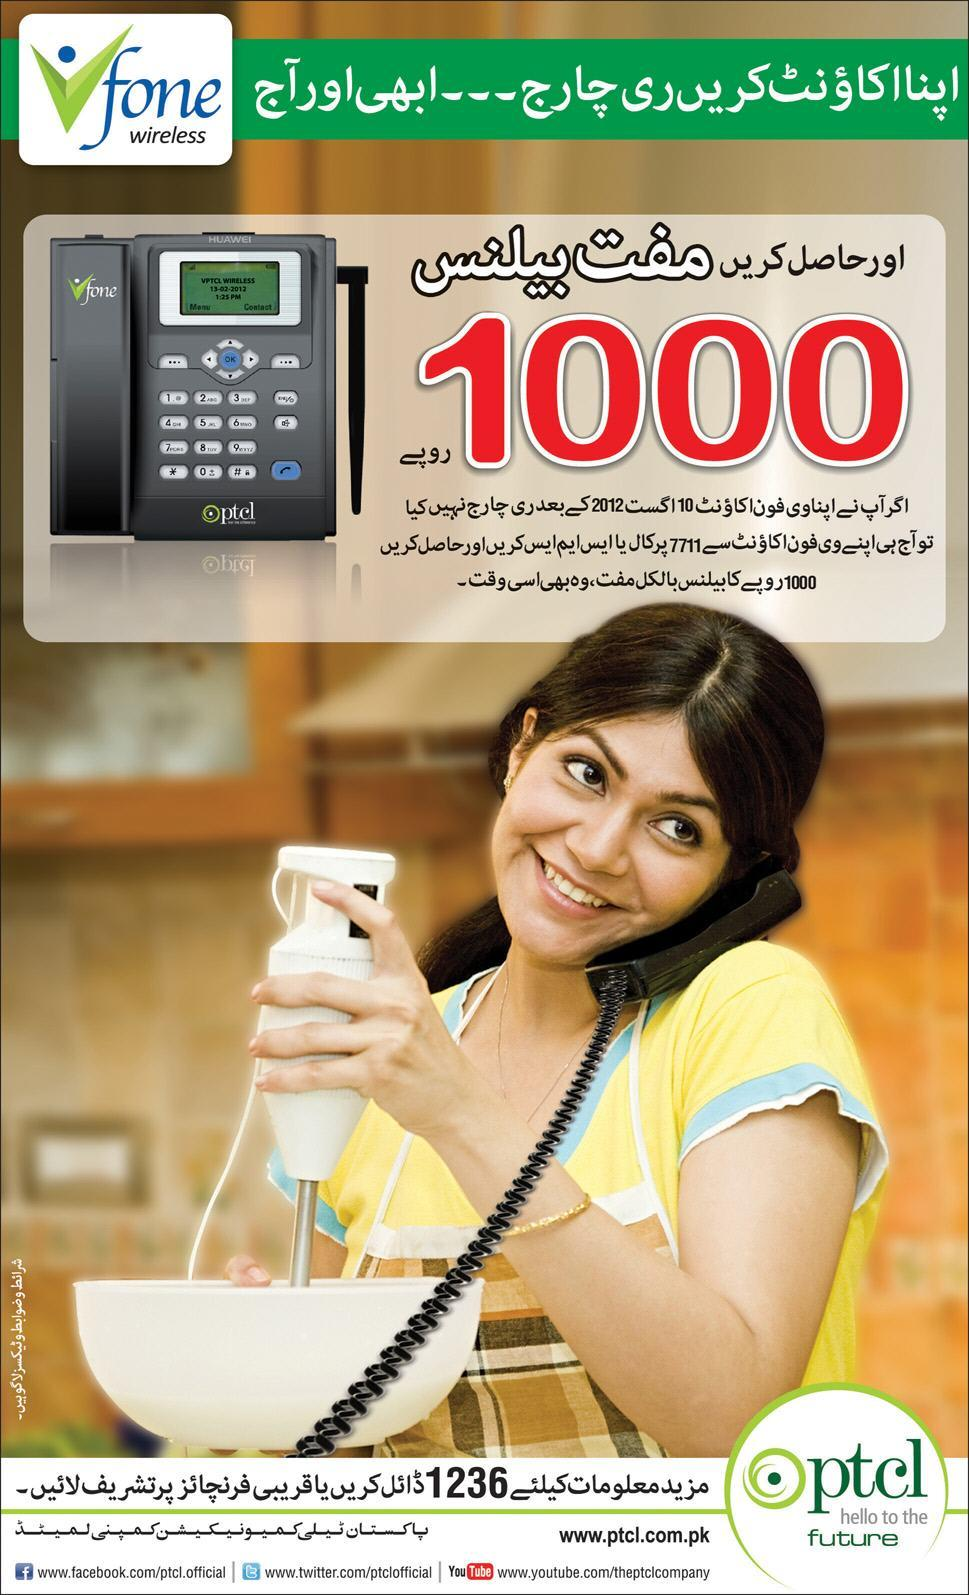 PTCL V Wireless Internet http://www.learningall.com/2013/01/ptcl-free-balance-of-rs-1000-on-vfone-reconnect-offer/